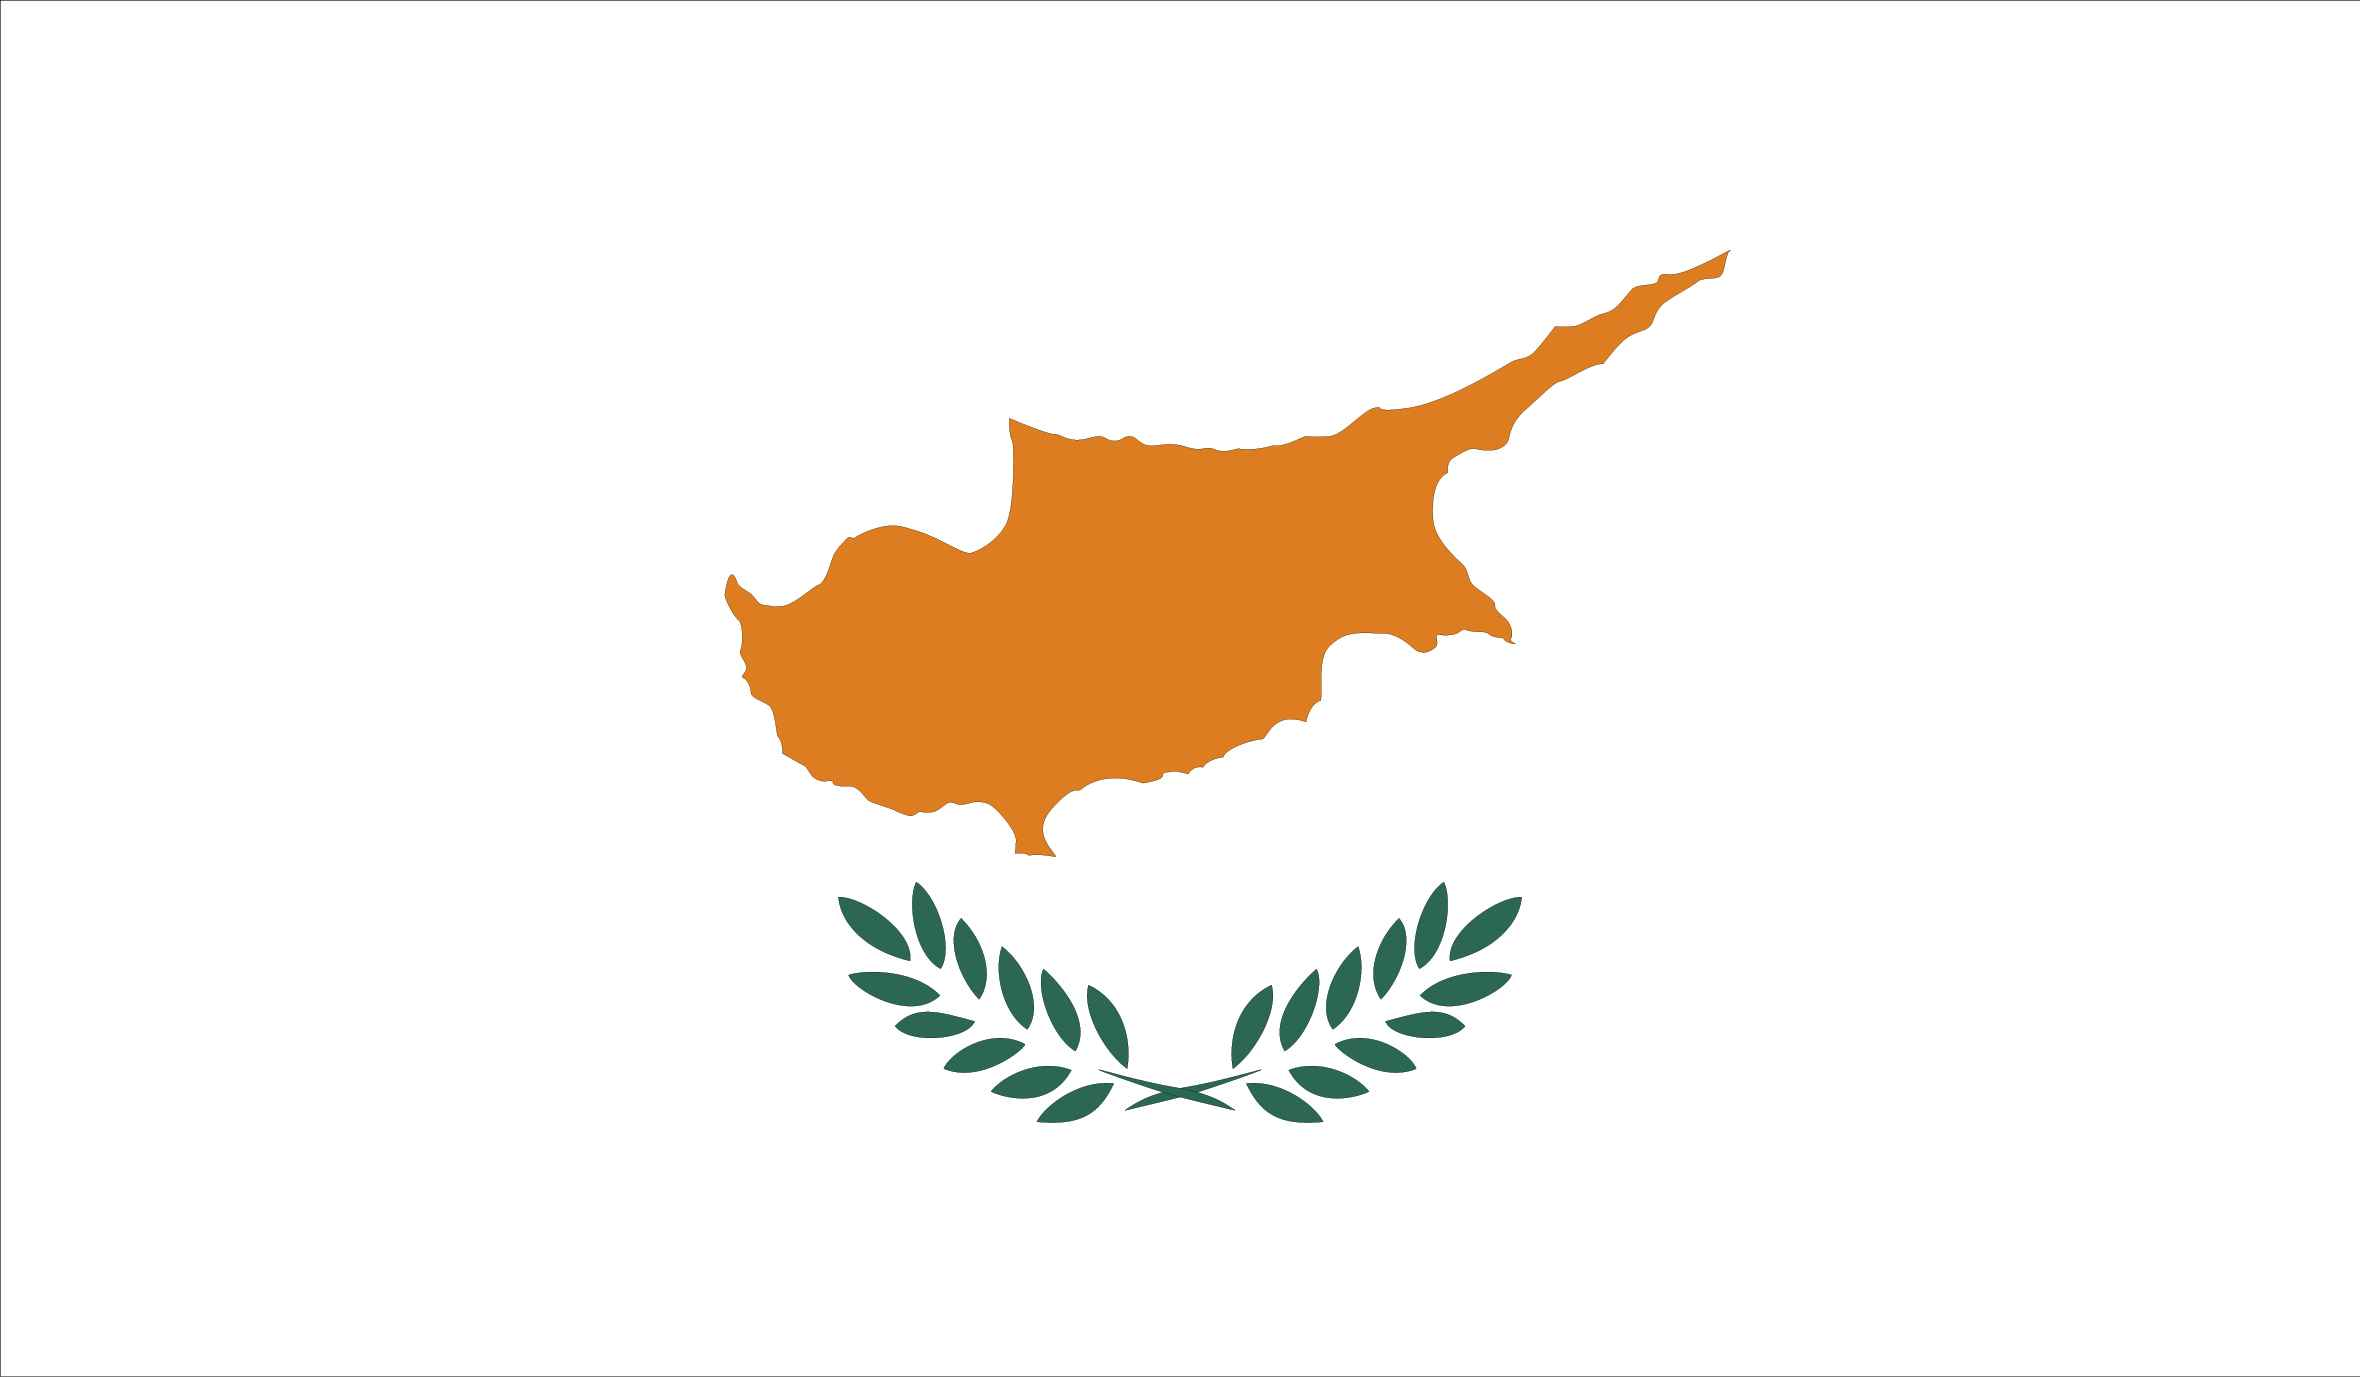 Cyprus Flag [PDF] Vector EPS Free Download, Logo, Icons, Brand Emblems